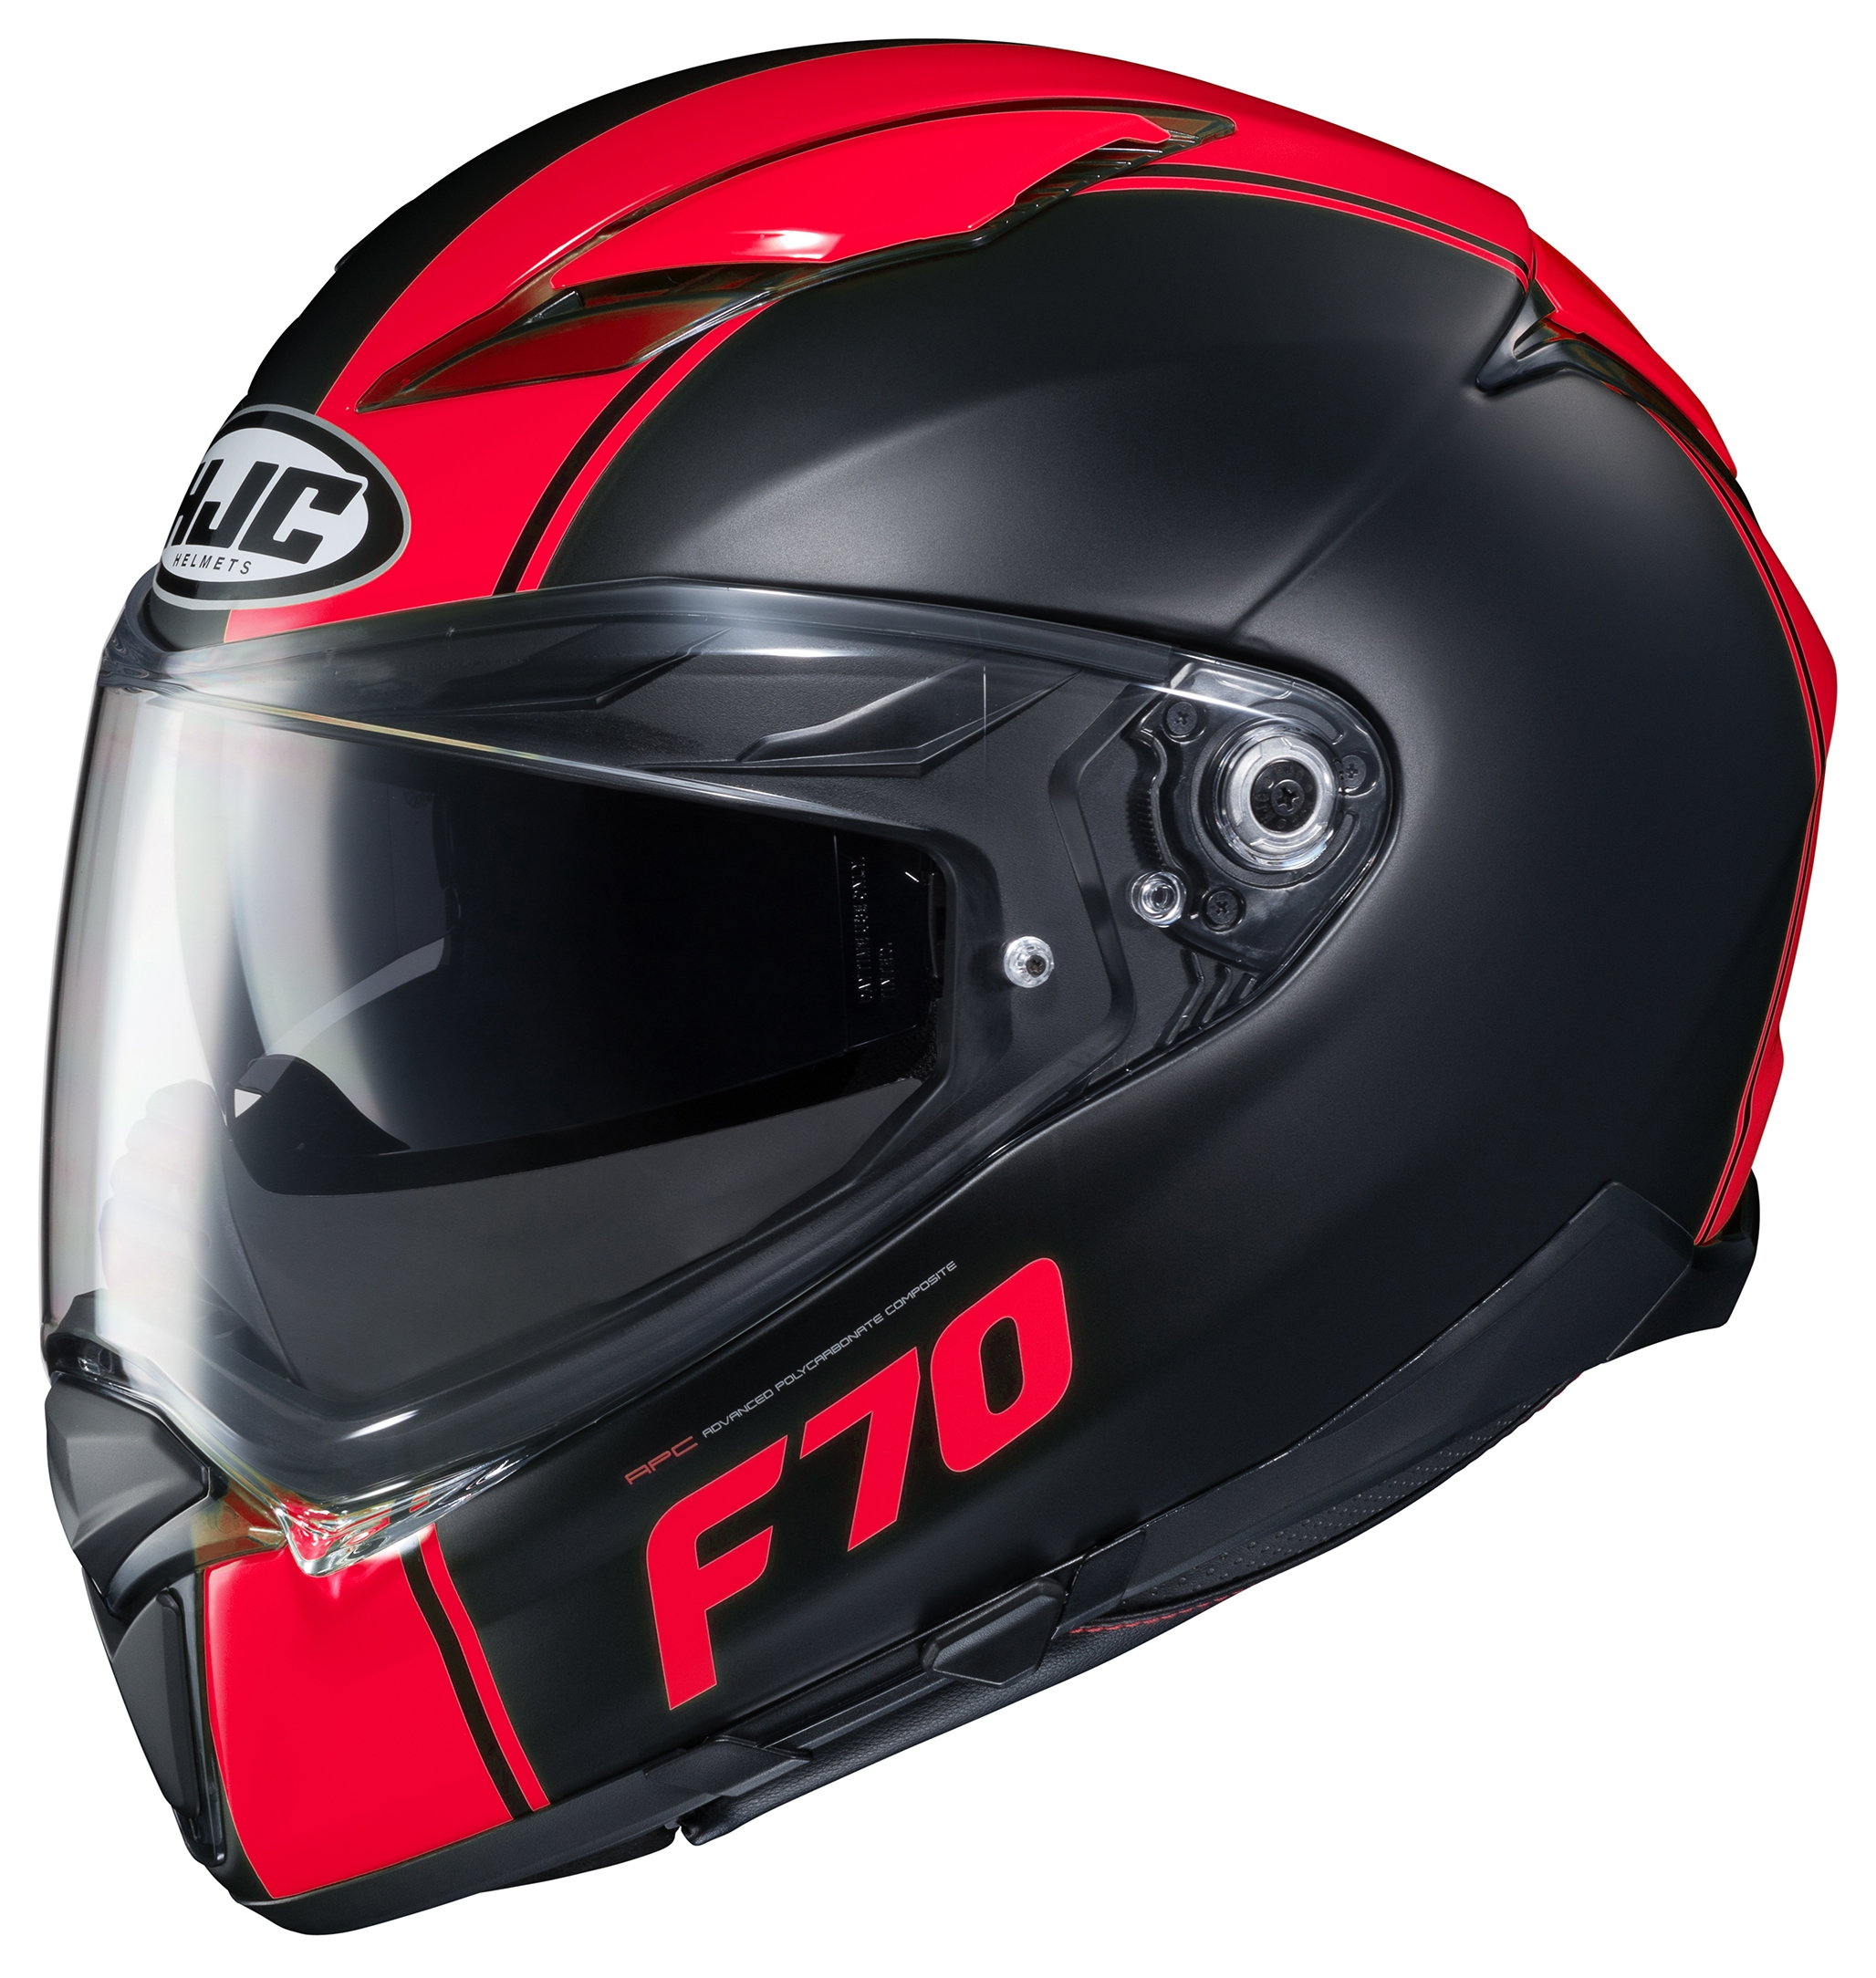 6 Tips -How To Take Care Of The Motorcycle Helmets?